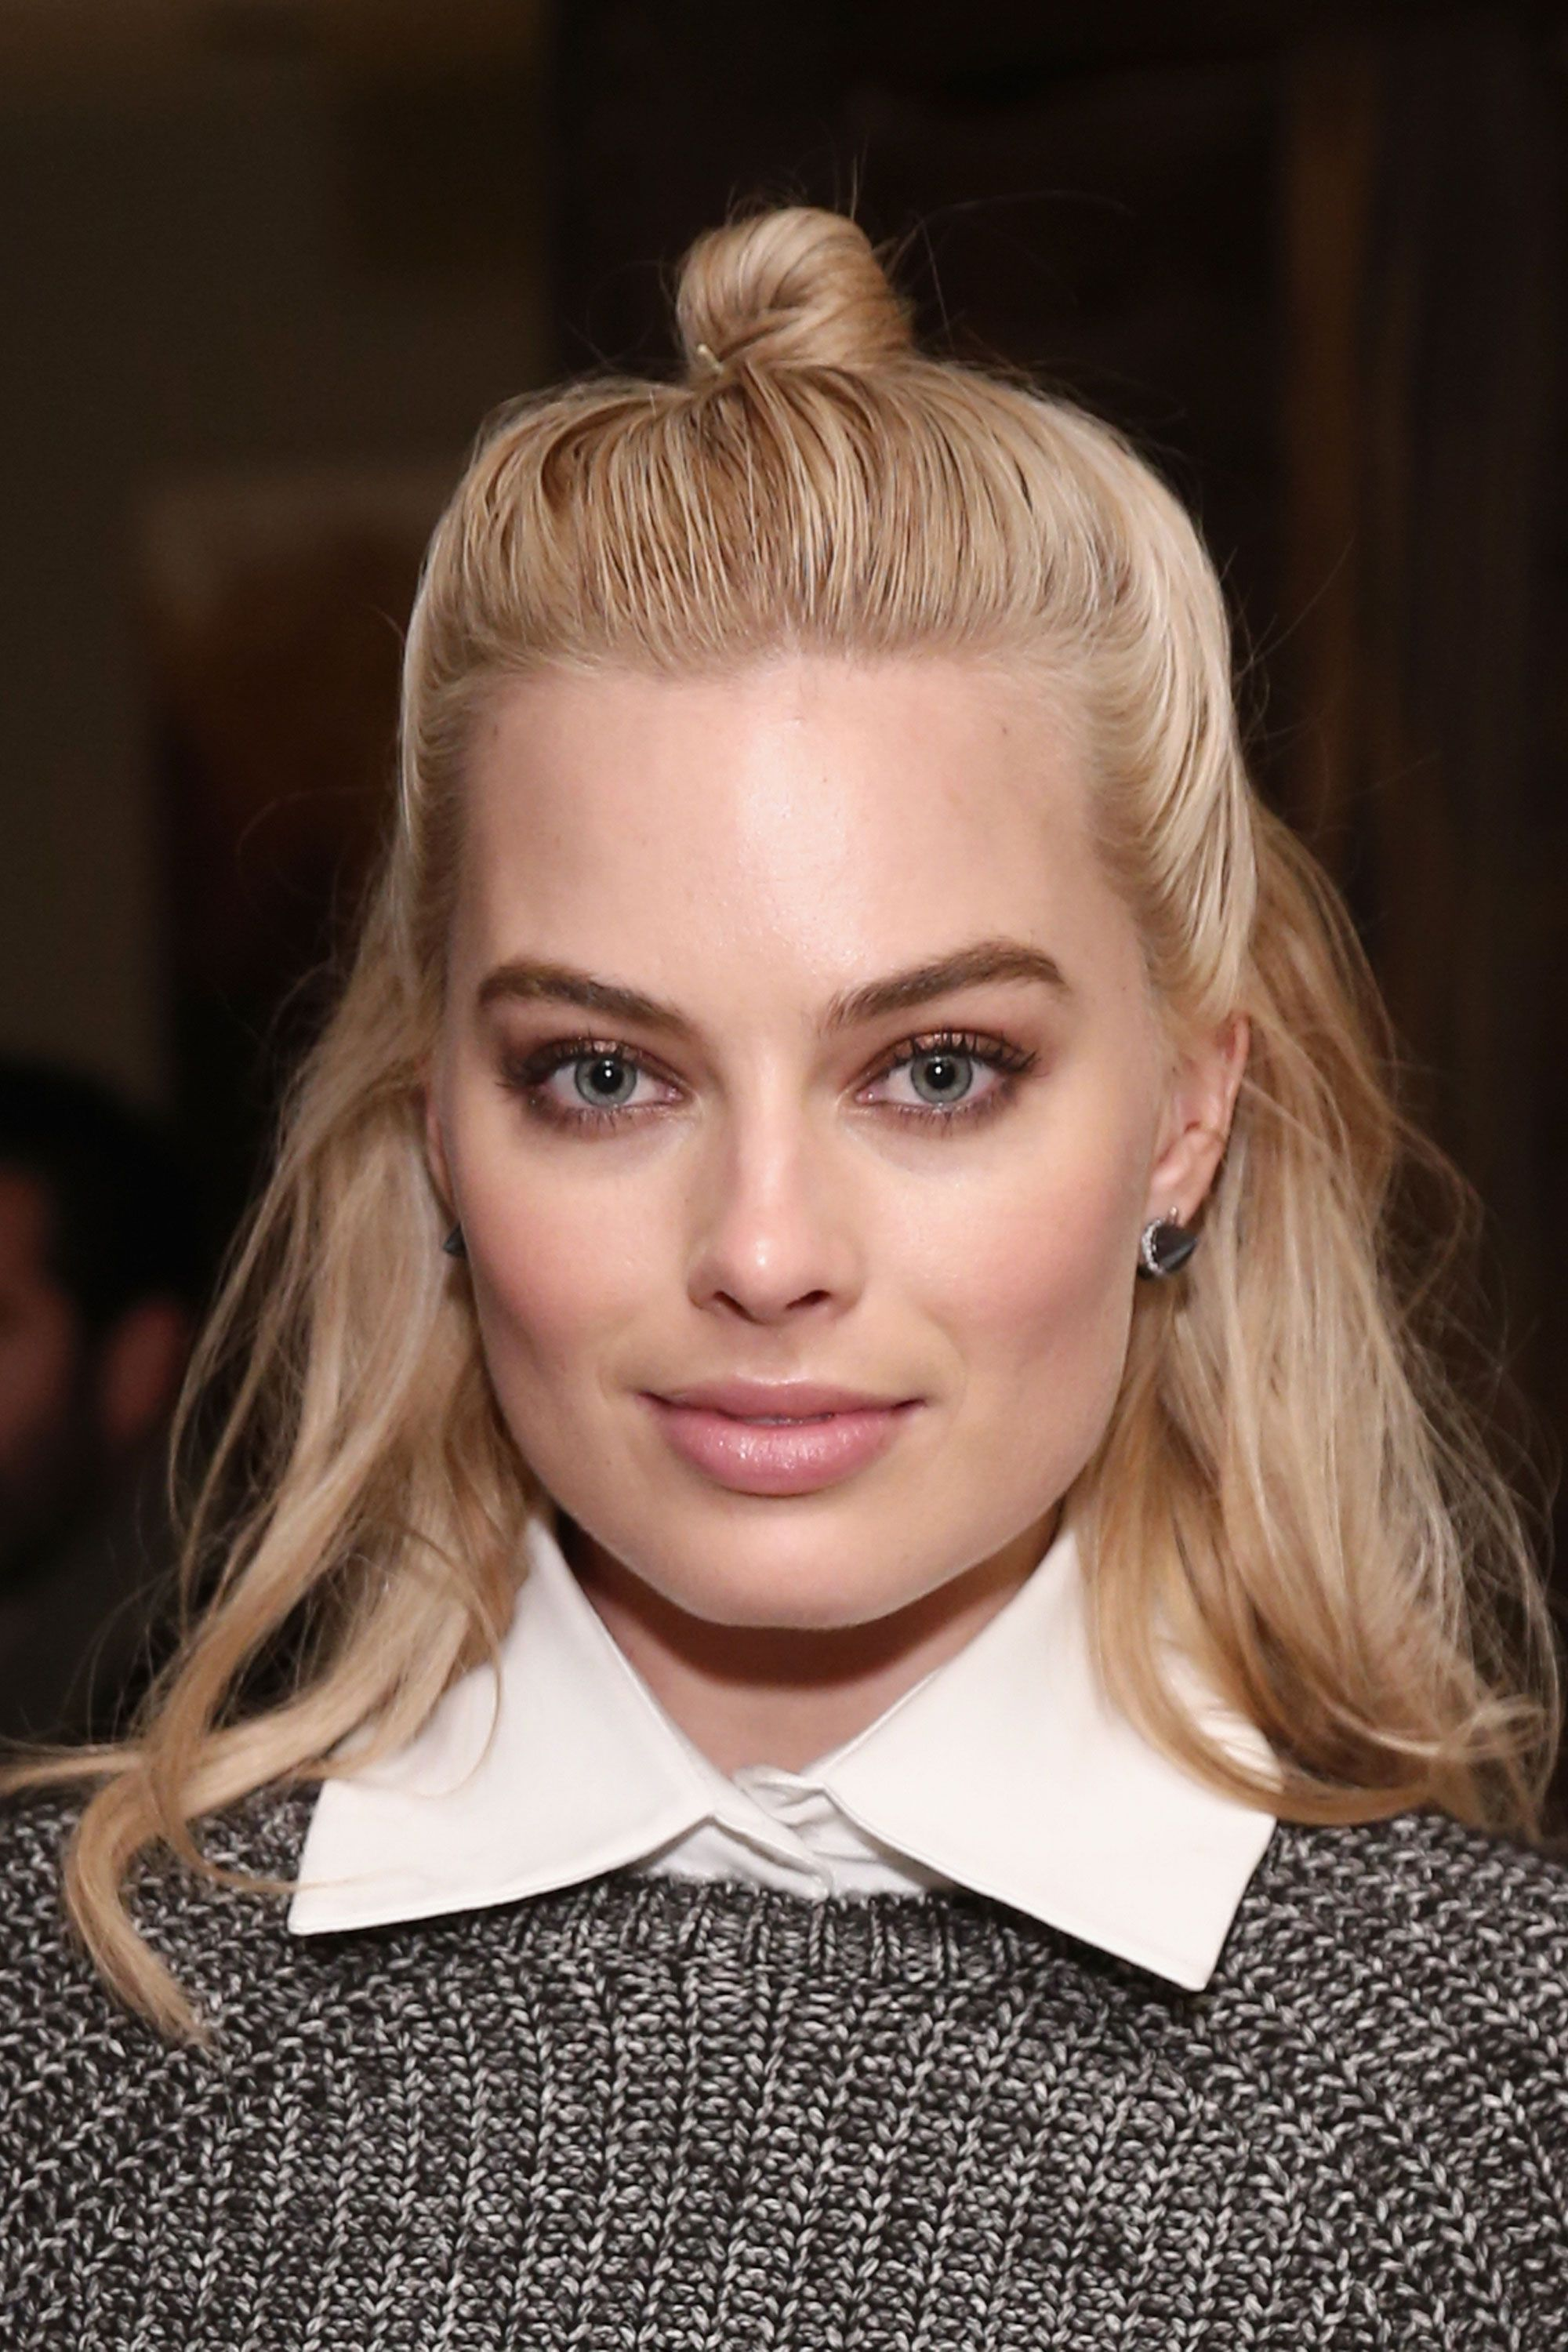 """Robbie is the latest to join the club of cool girls who sport the relaxed <a href=""""http://www.elle.com/beauty/hair/how-to/g11696/street-style-hair-idea-the-half-bun/?"""">half bun hairstyle</a>."""